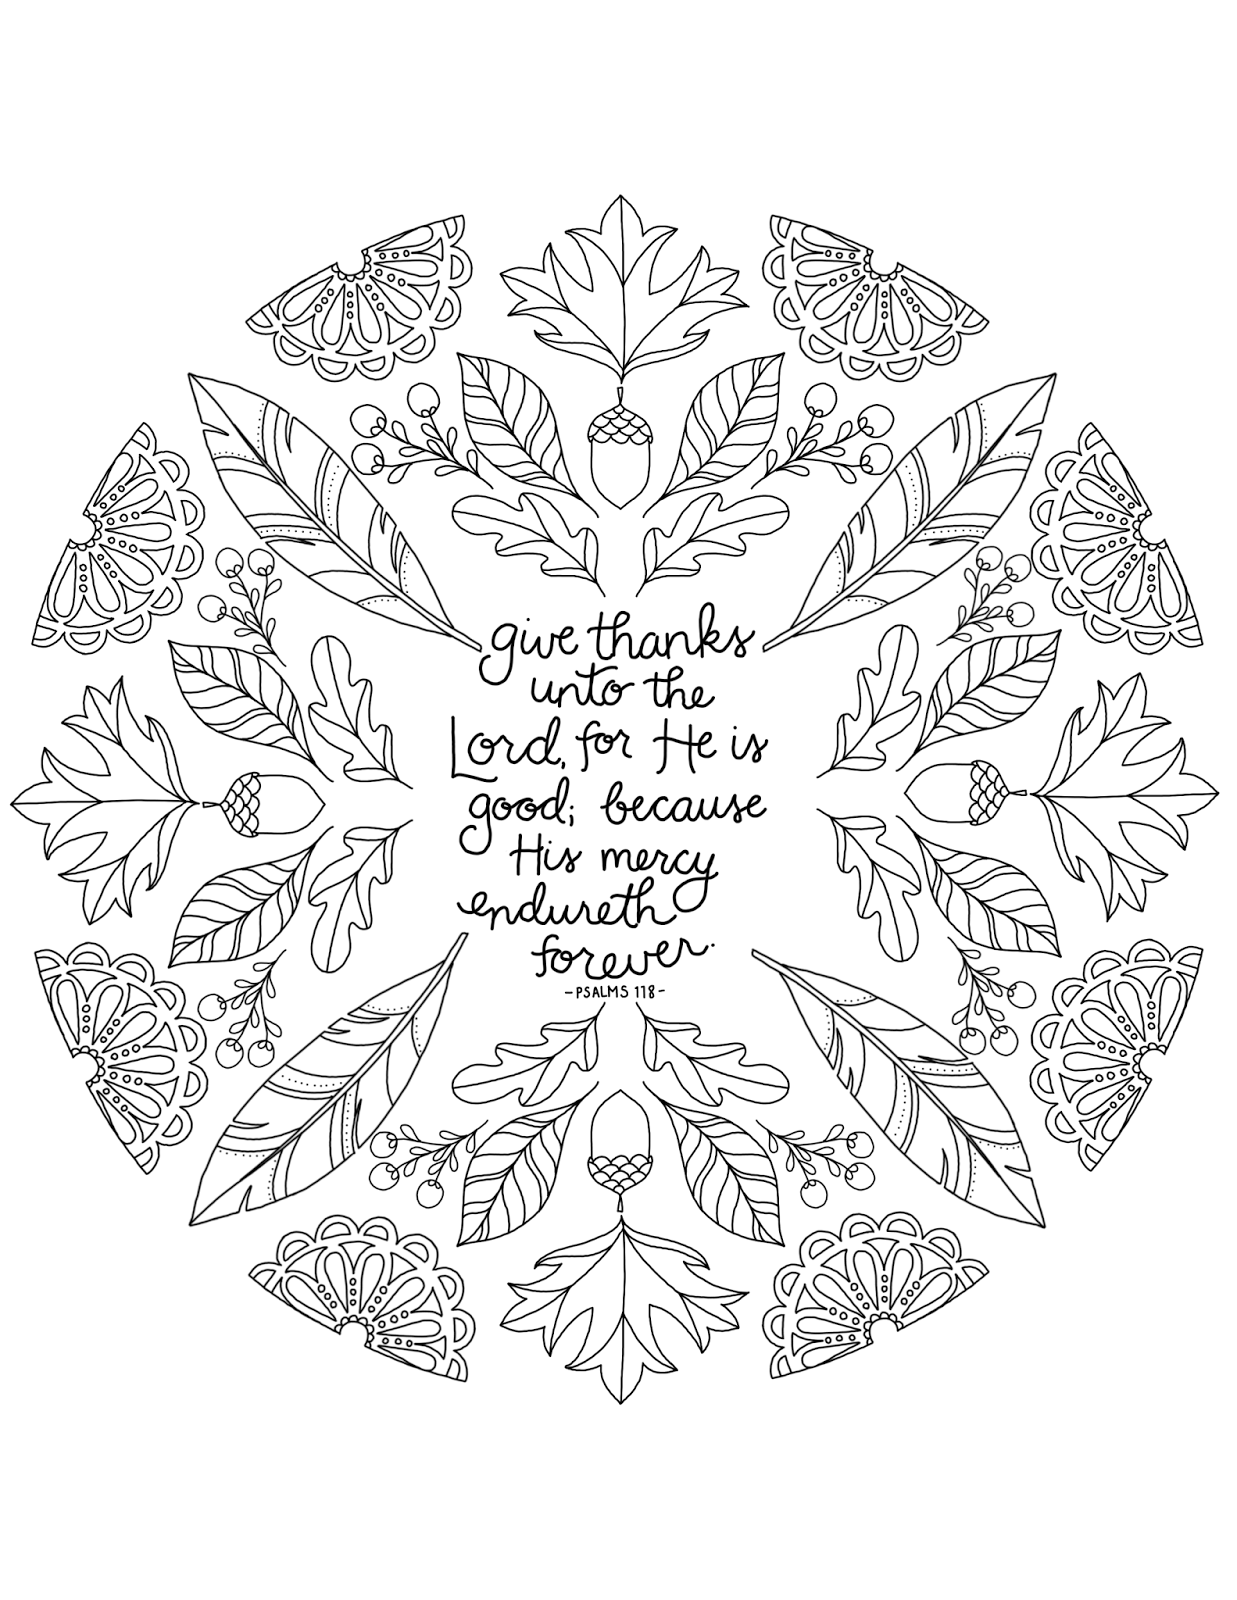 Just What I Squeeze In Give Thanks Unto The Lord Free Give Thanks To The Lord Coloring Page